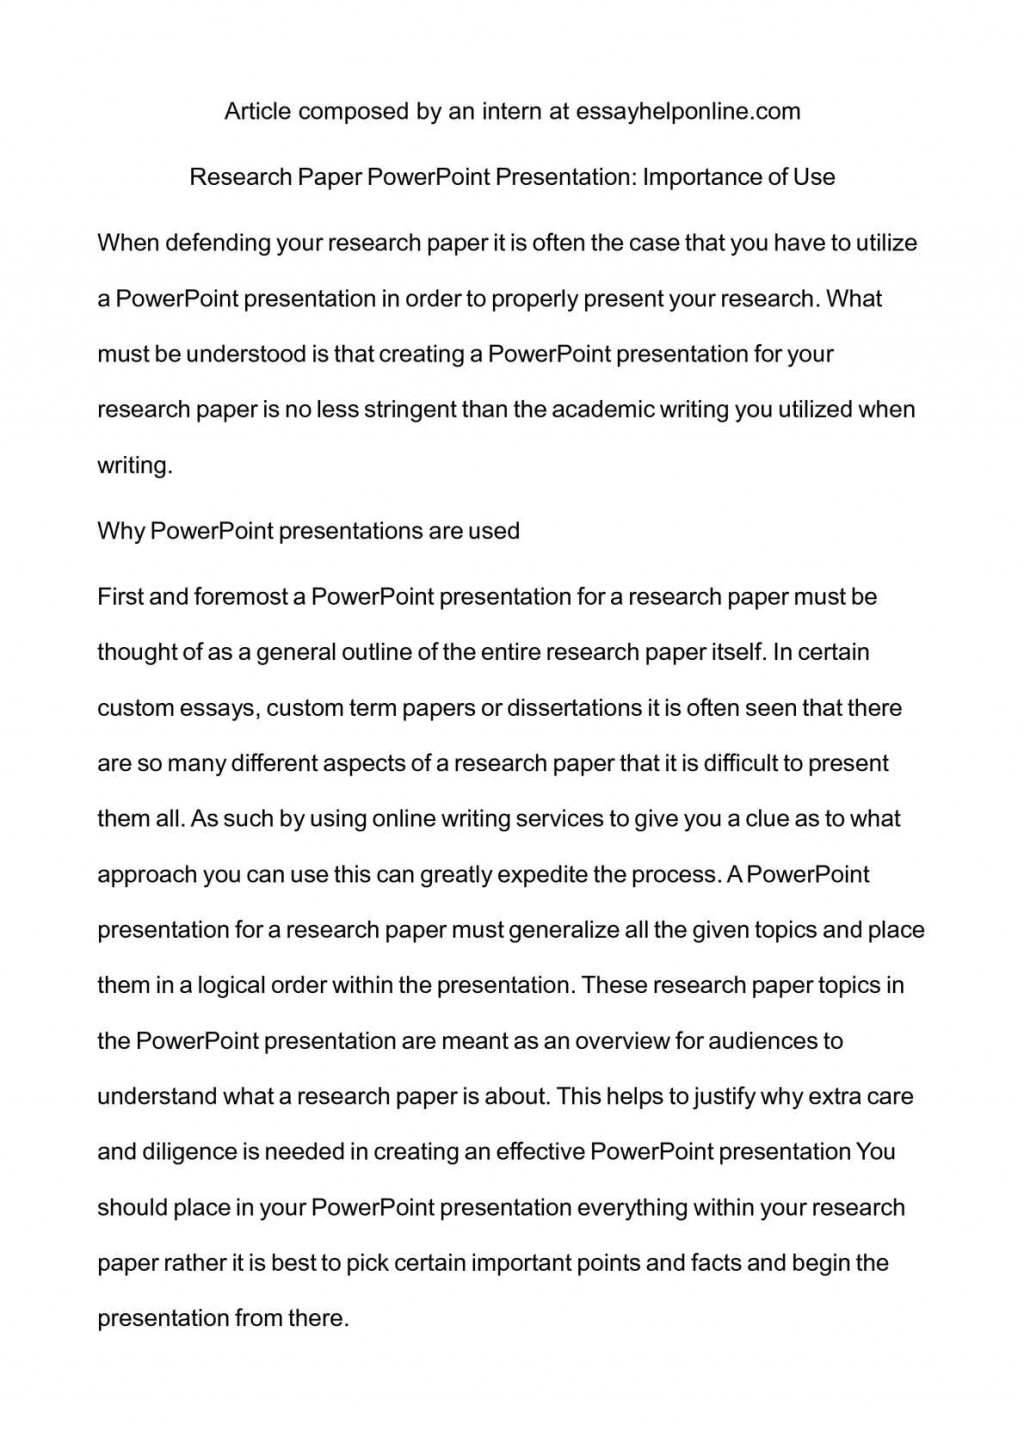 004 How To Research Paper Ppt Outstanding Publish Write Abstract For Prepare Large